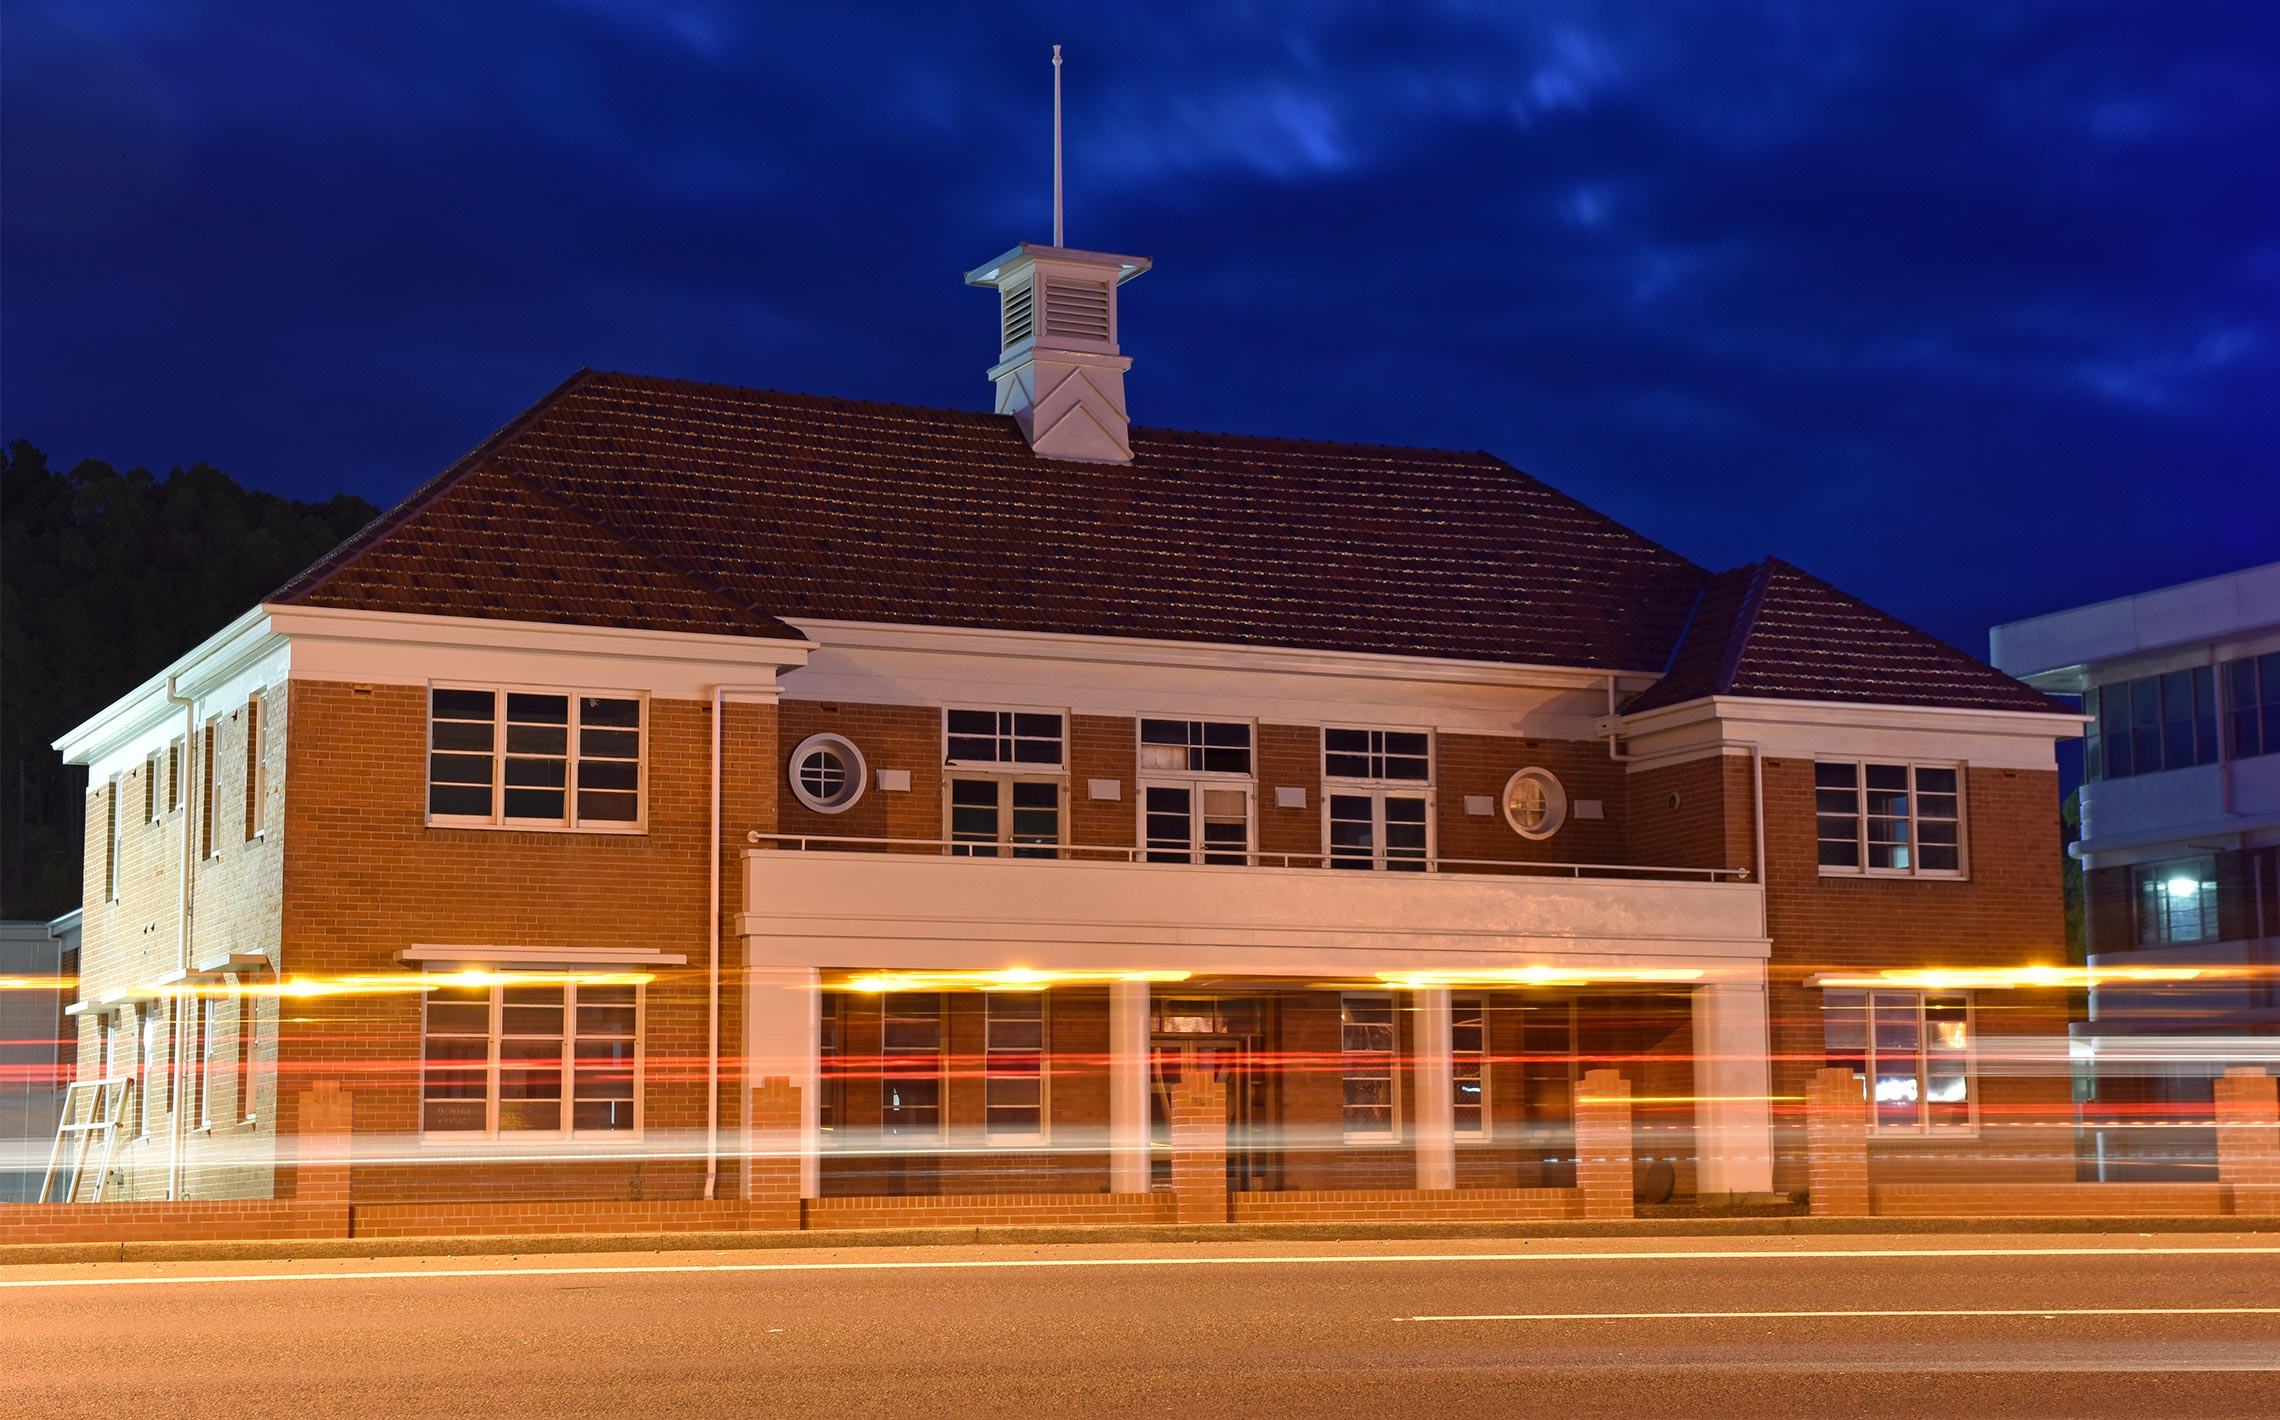 Restored paper mill office building in Burnie, Tasmania with blurred lights.